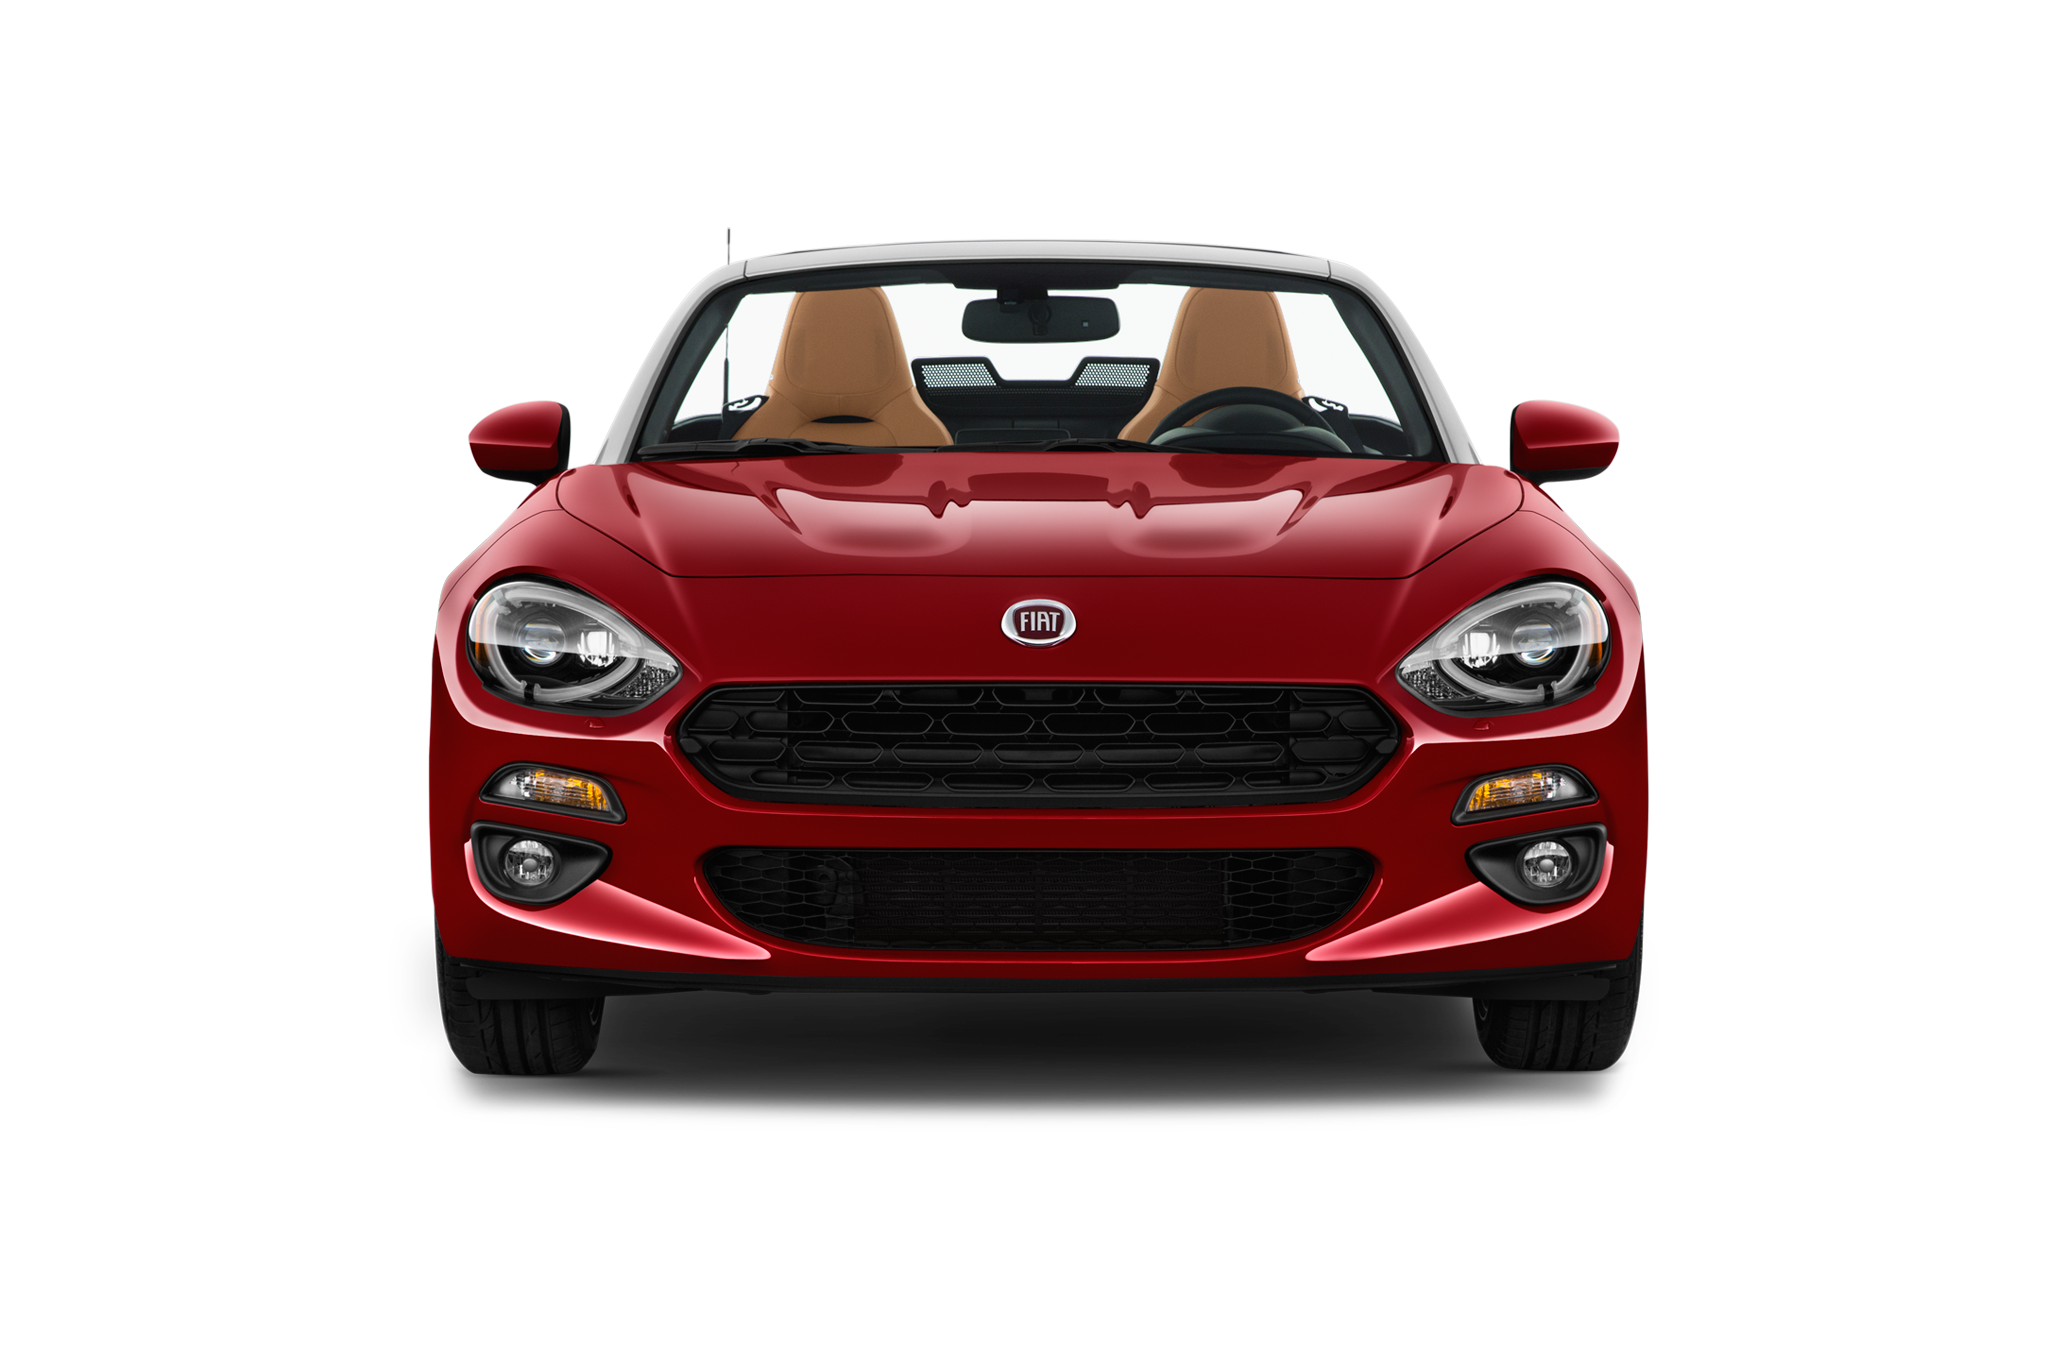 fiat considering fixed roof coupe variant of the 124 spider report automobile magazine. Black Bedroom Furniture Sets. Home Design Ideas